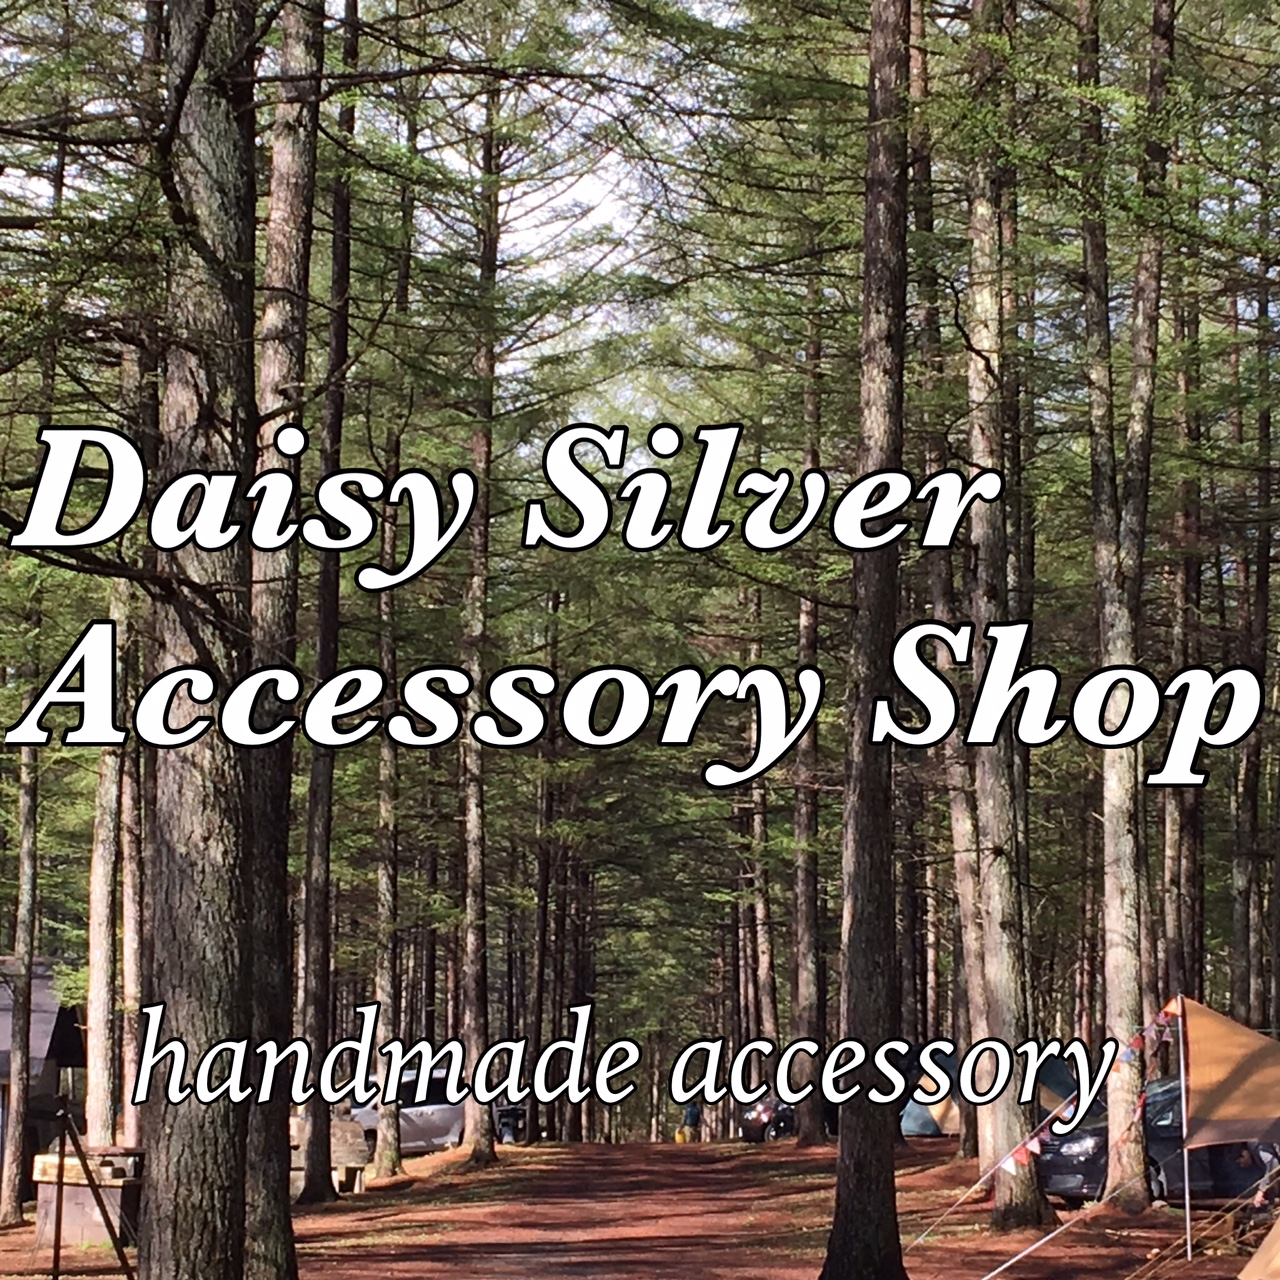 Daisy  Silver  Accessory Shop